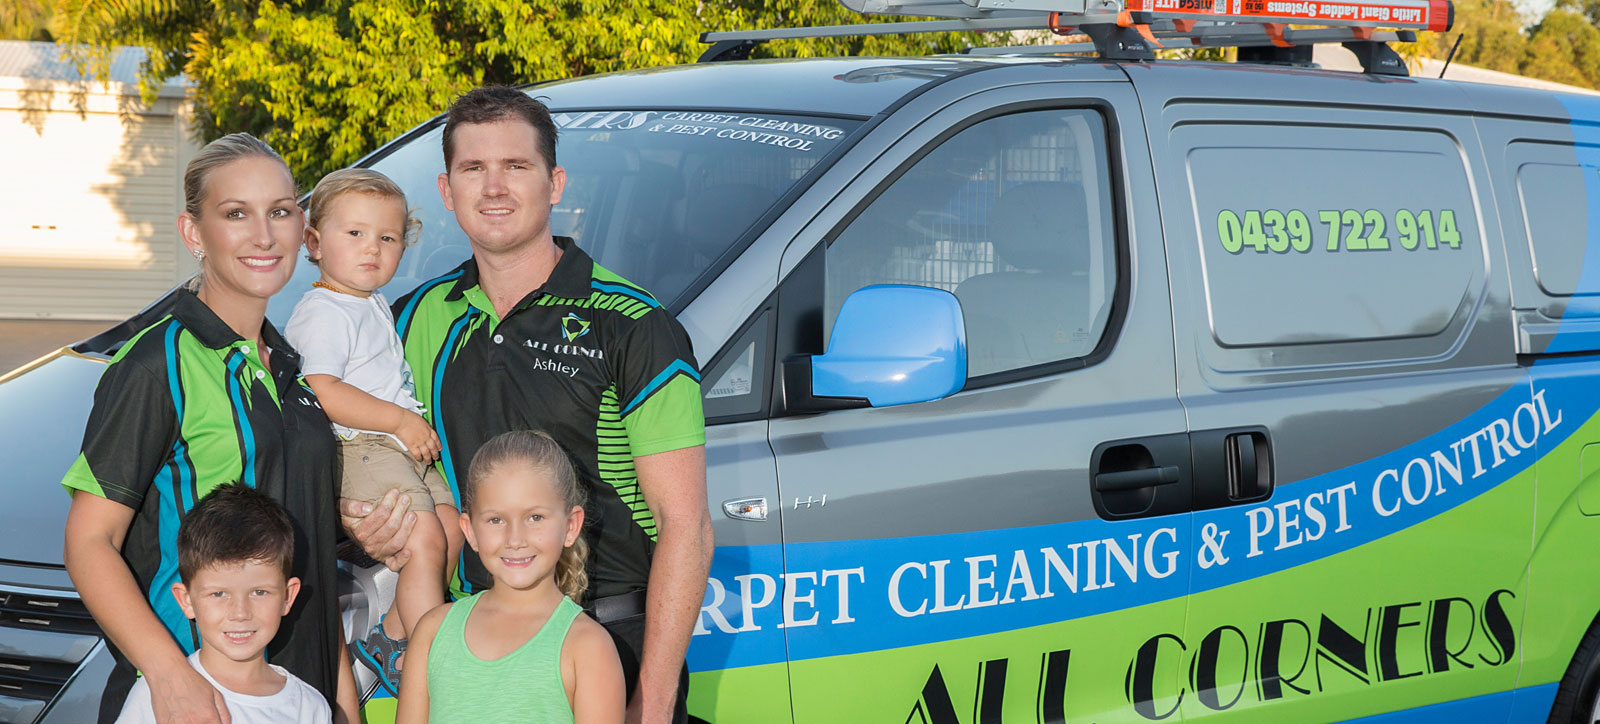 carpet cleaning services banner north lakes